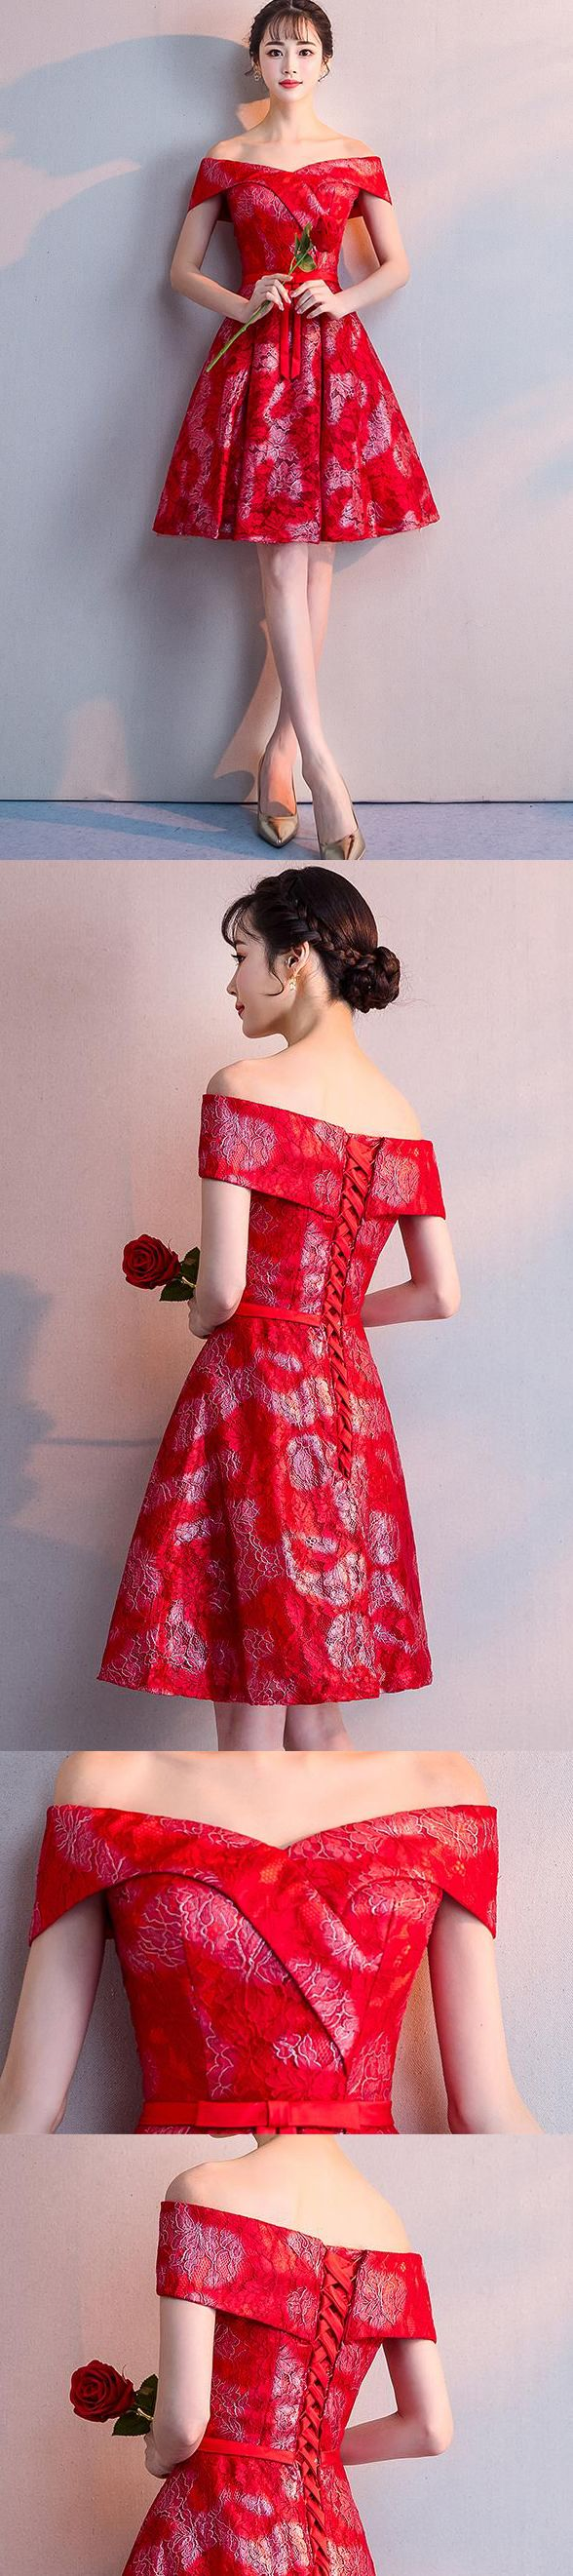 Red lace homecoming dressescharming off the shoulder homecoming